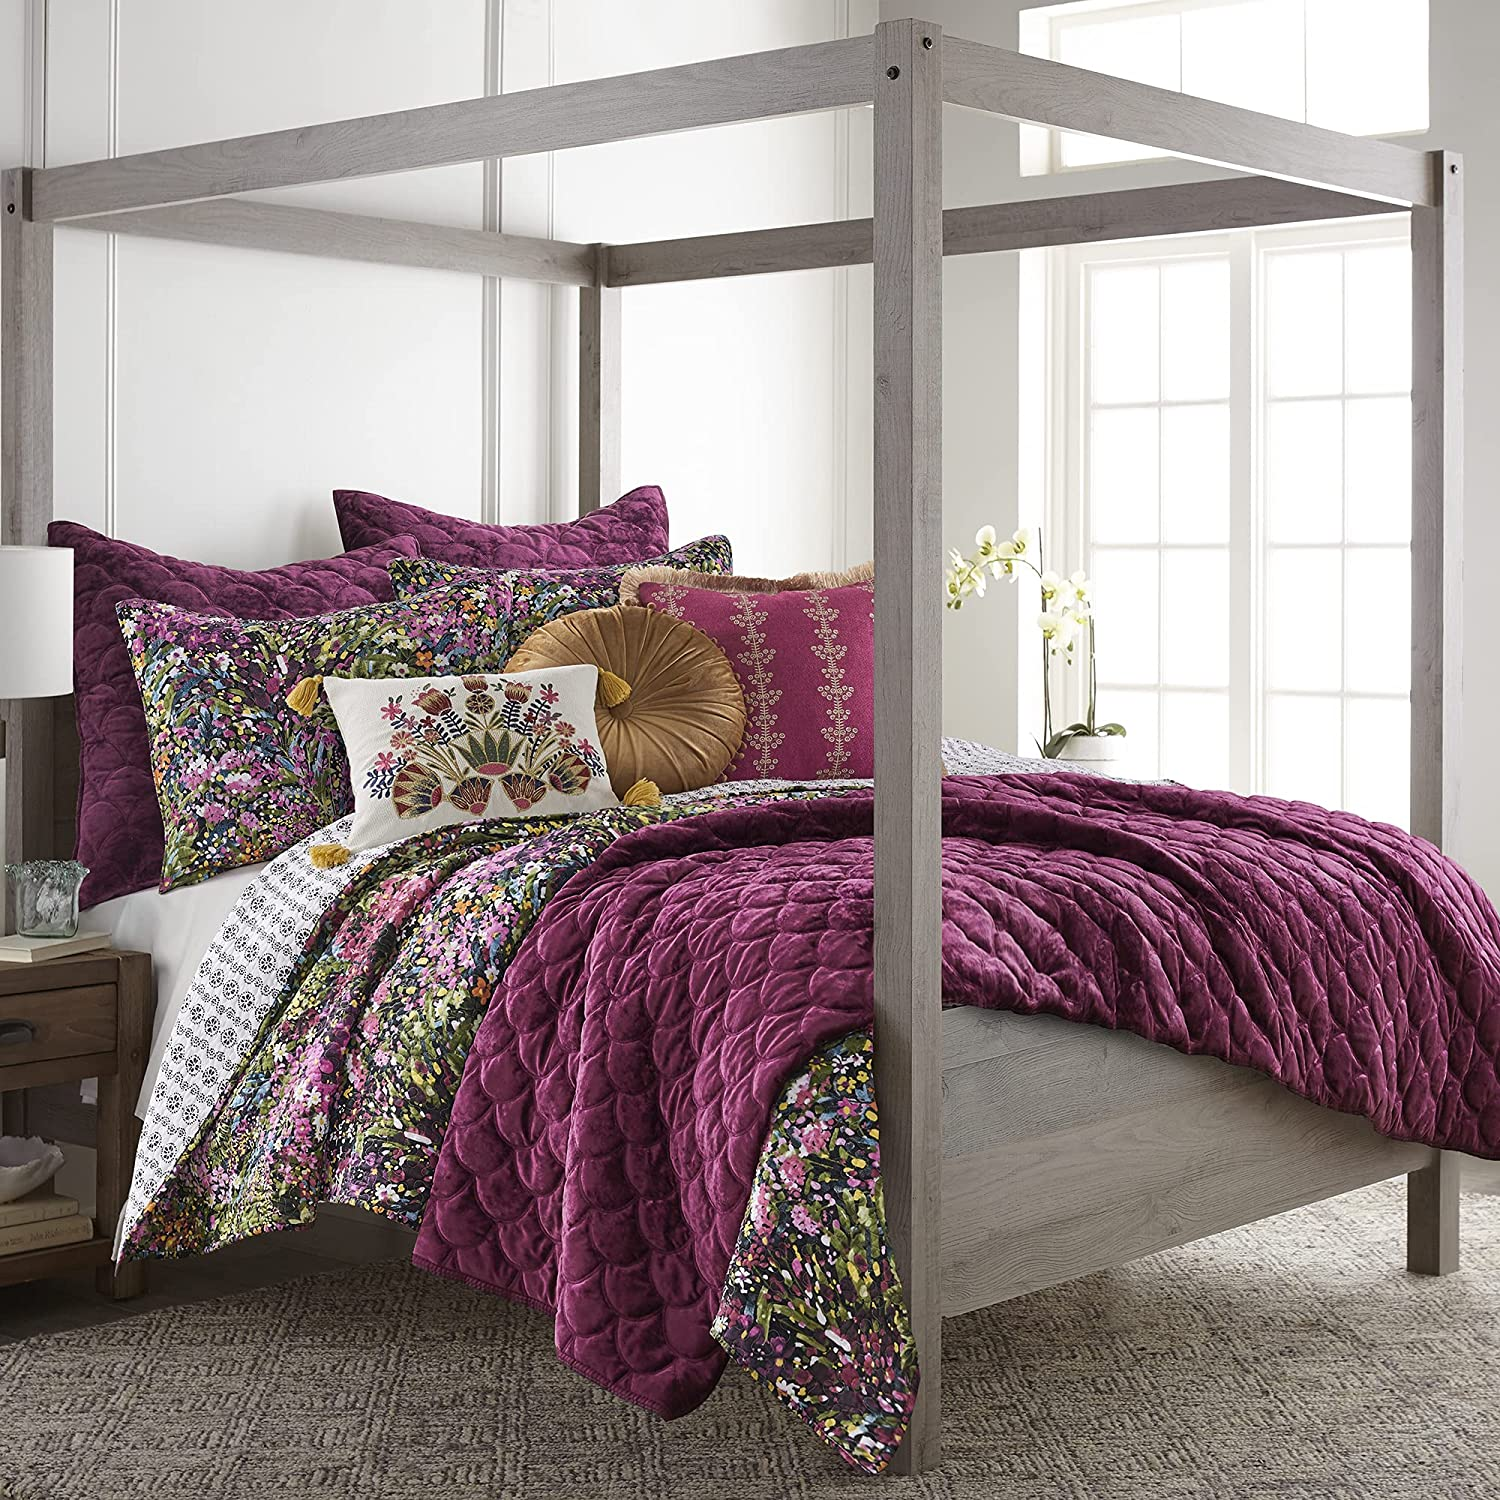 Levtex Home - Basel Quilt Set - King Quilt + Two King Pillow Shams - Multicolor Floral - Quilt Size (106x92in.) and Pillow Sham Size (36x20in. )- Reversible - Cotton